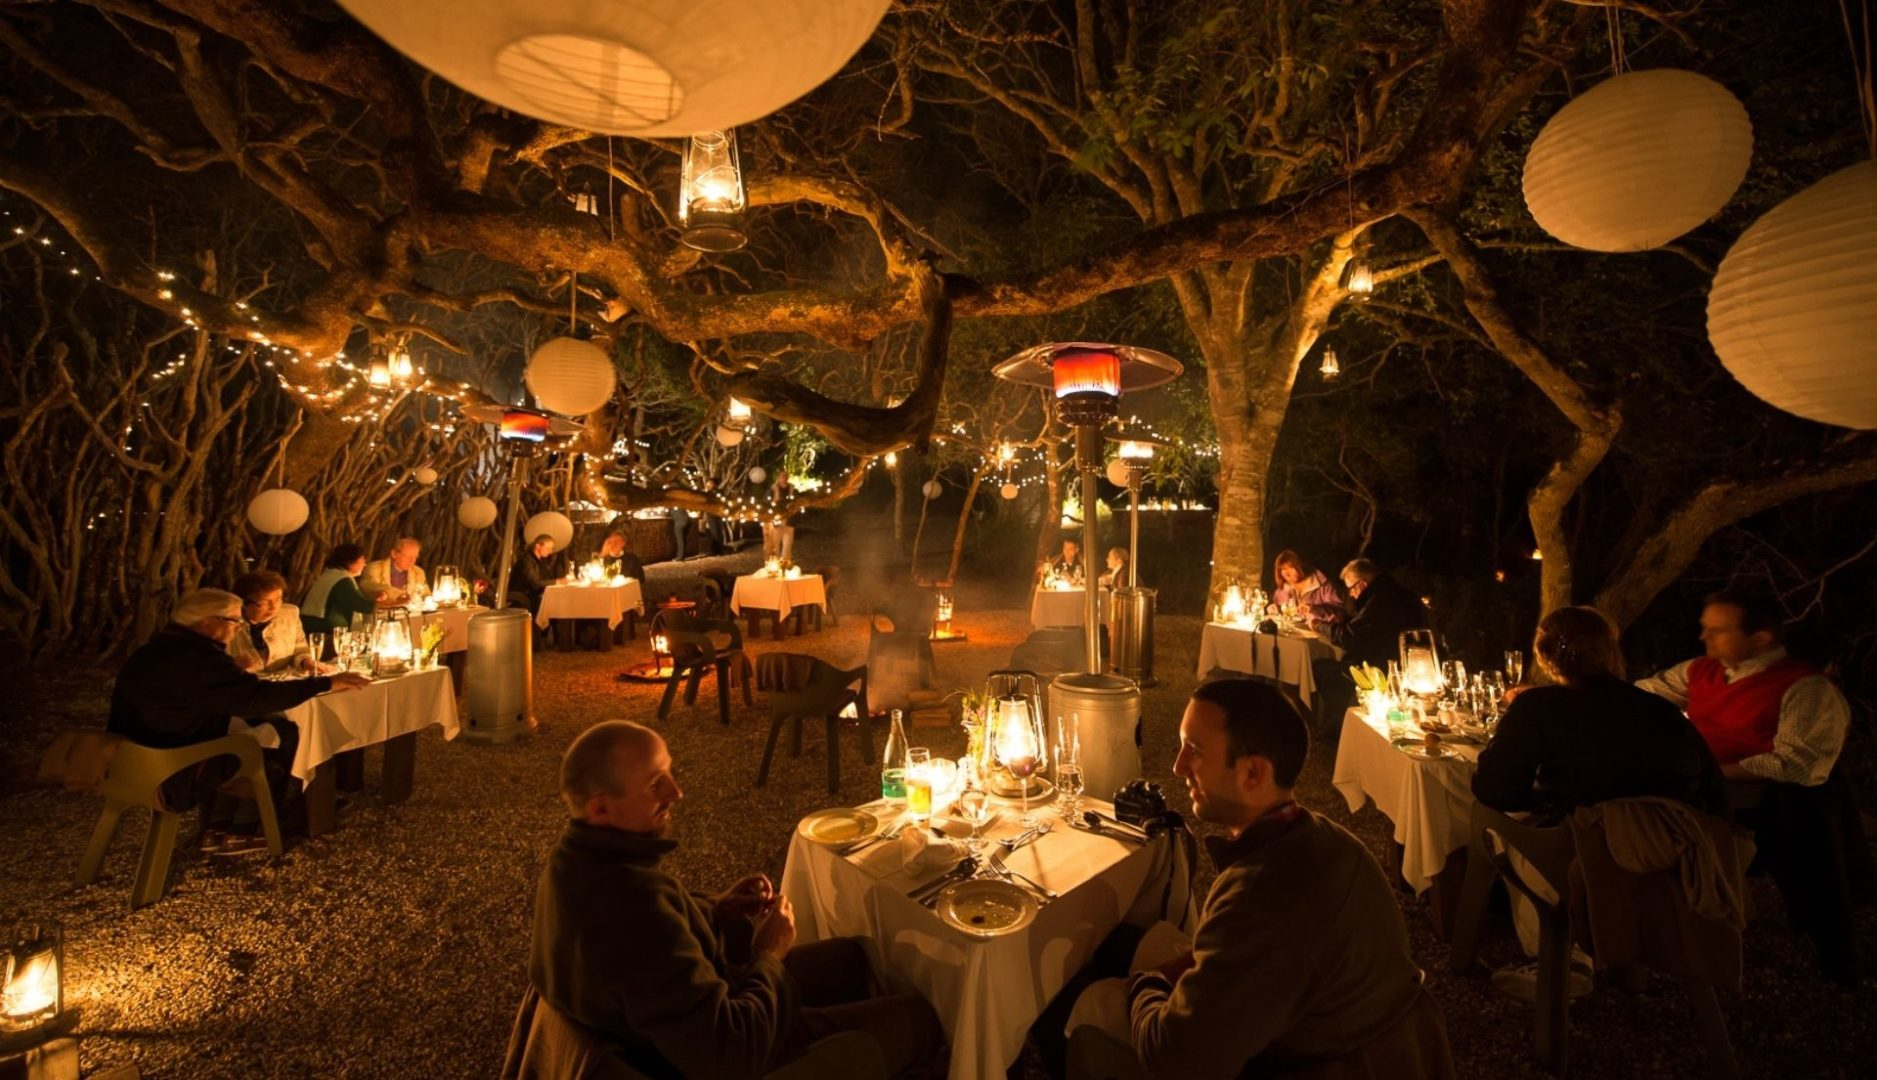 Dining in the Boma